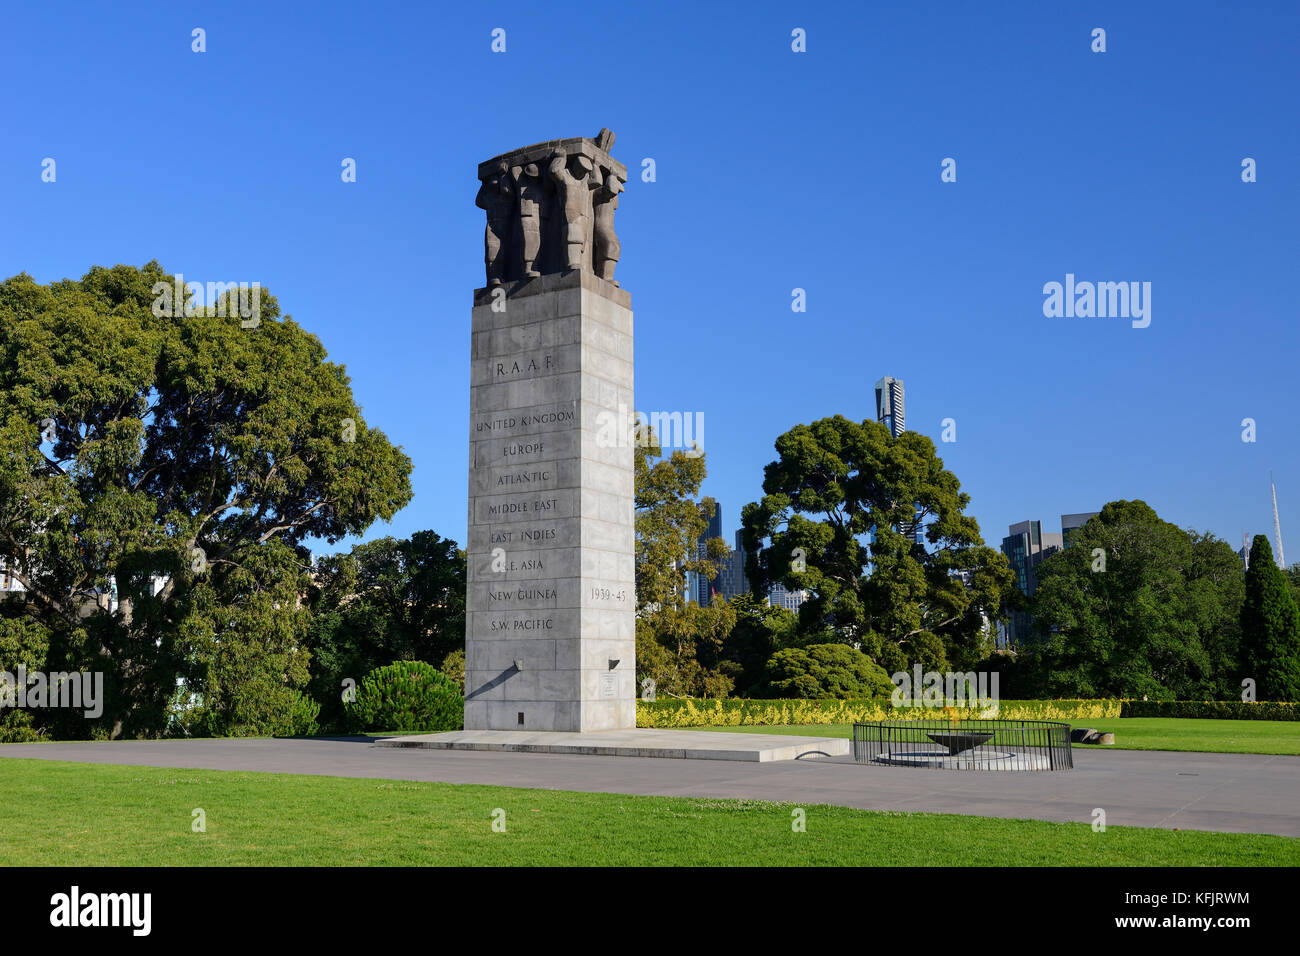 Royal Australian Air Force  World War II Memorial within the King's Domain Park in Melbourne, Victoria, Australia - Stock Image